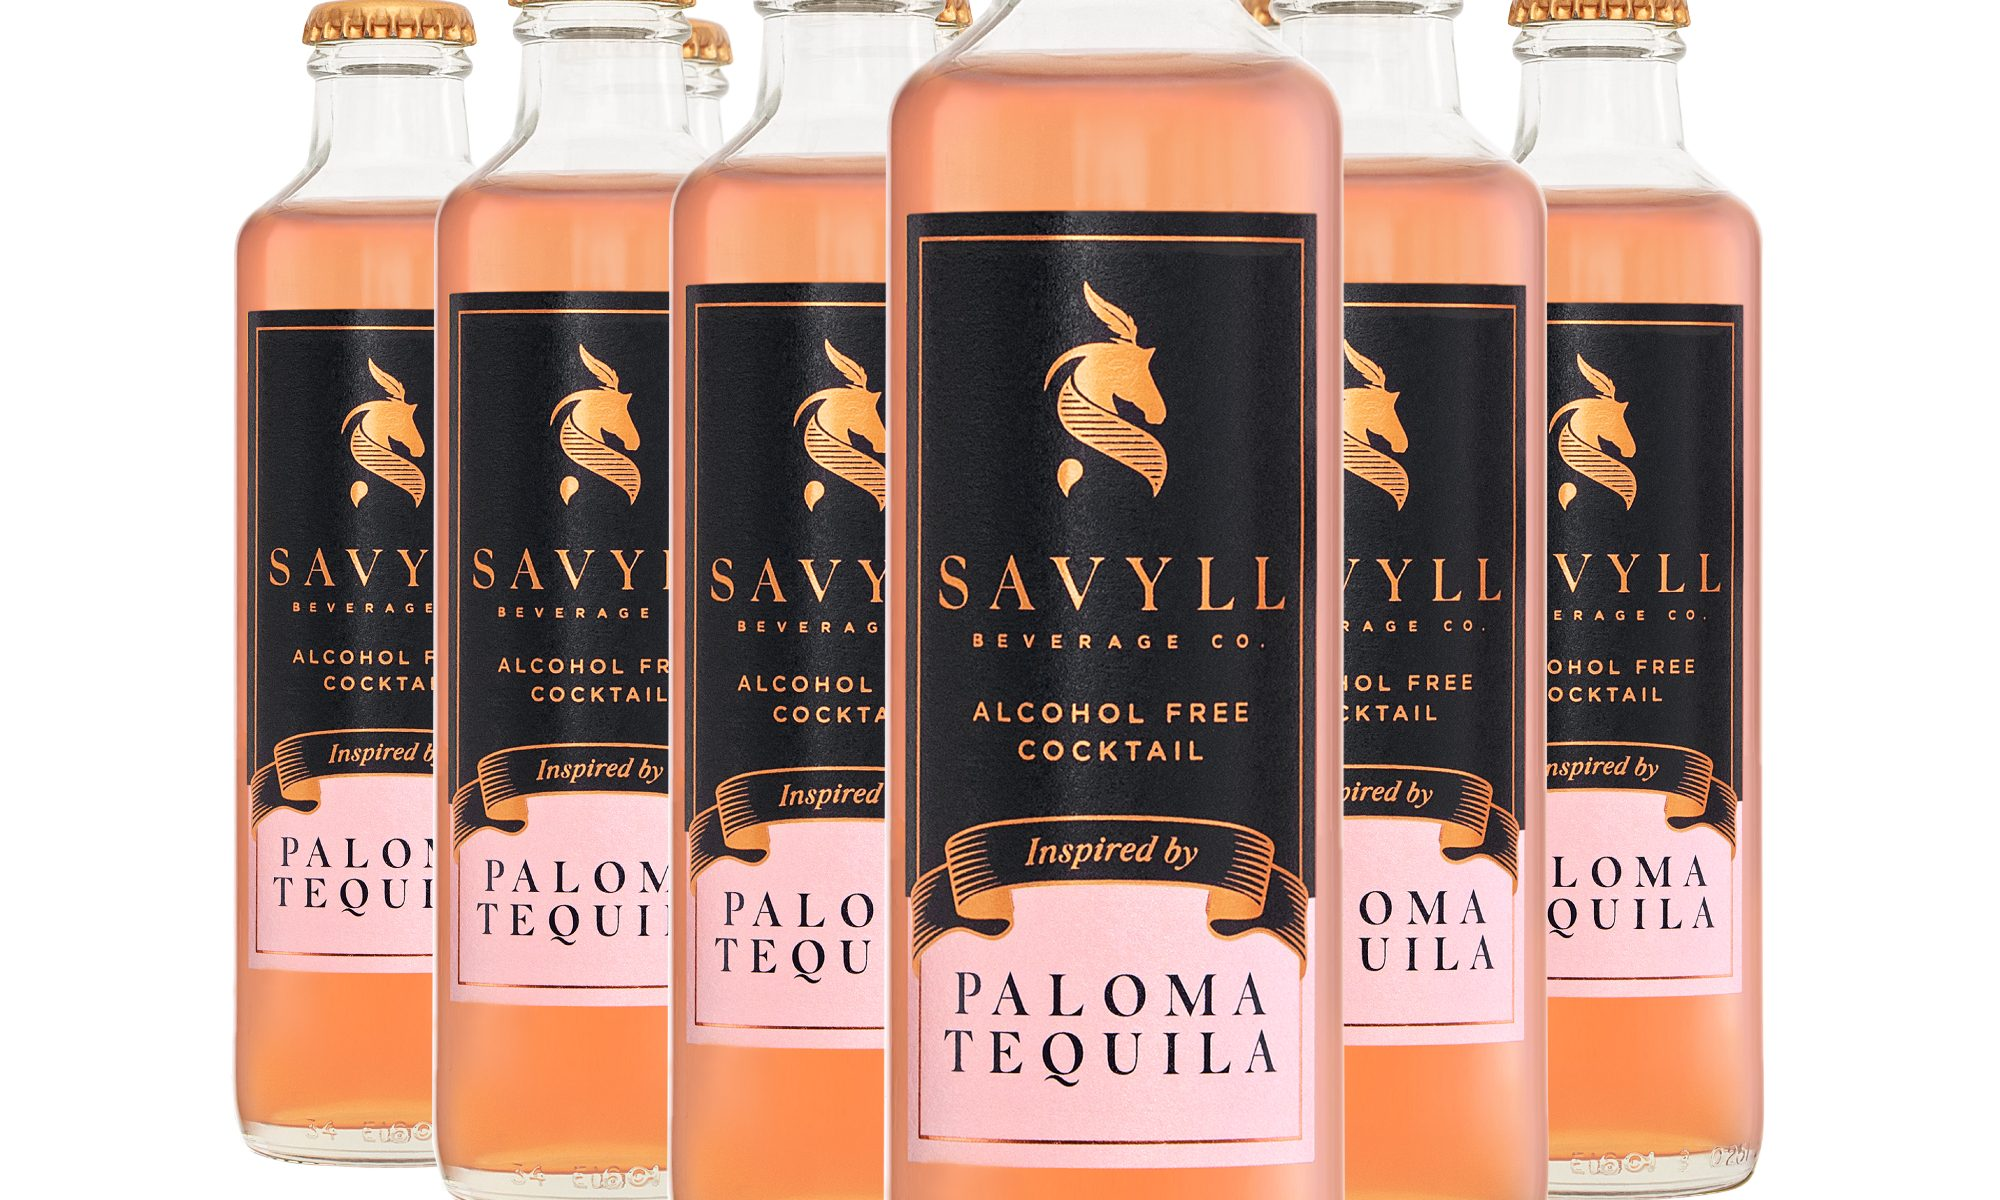 Savyll Paloma Tequila - Case of 12